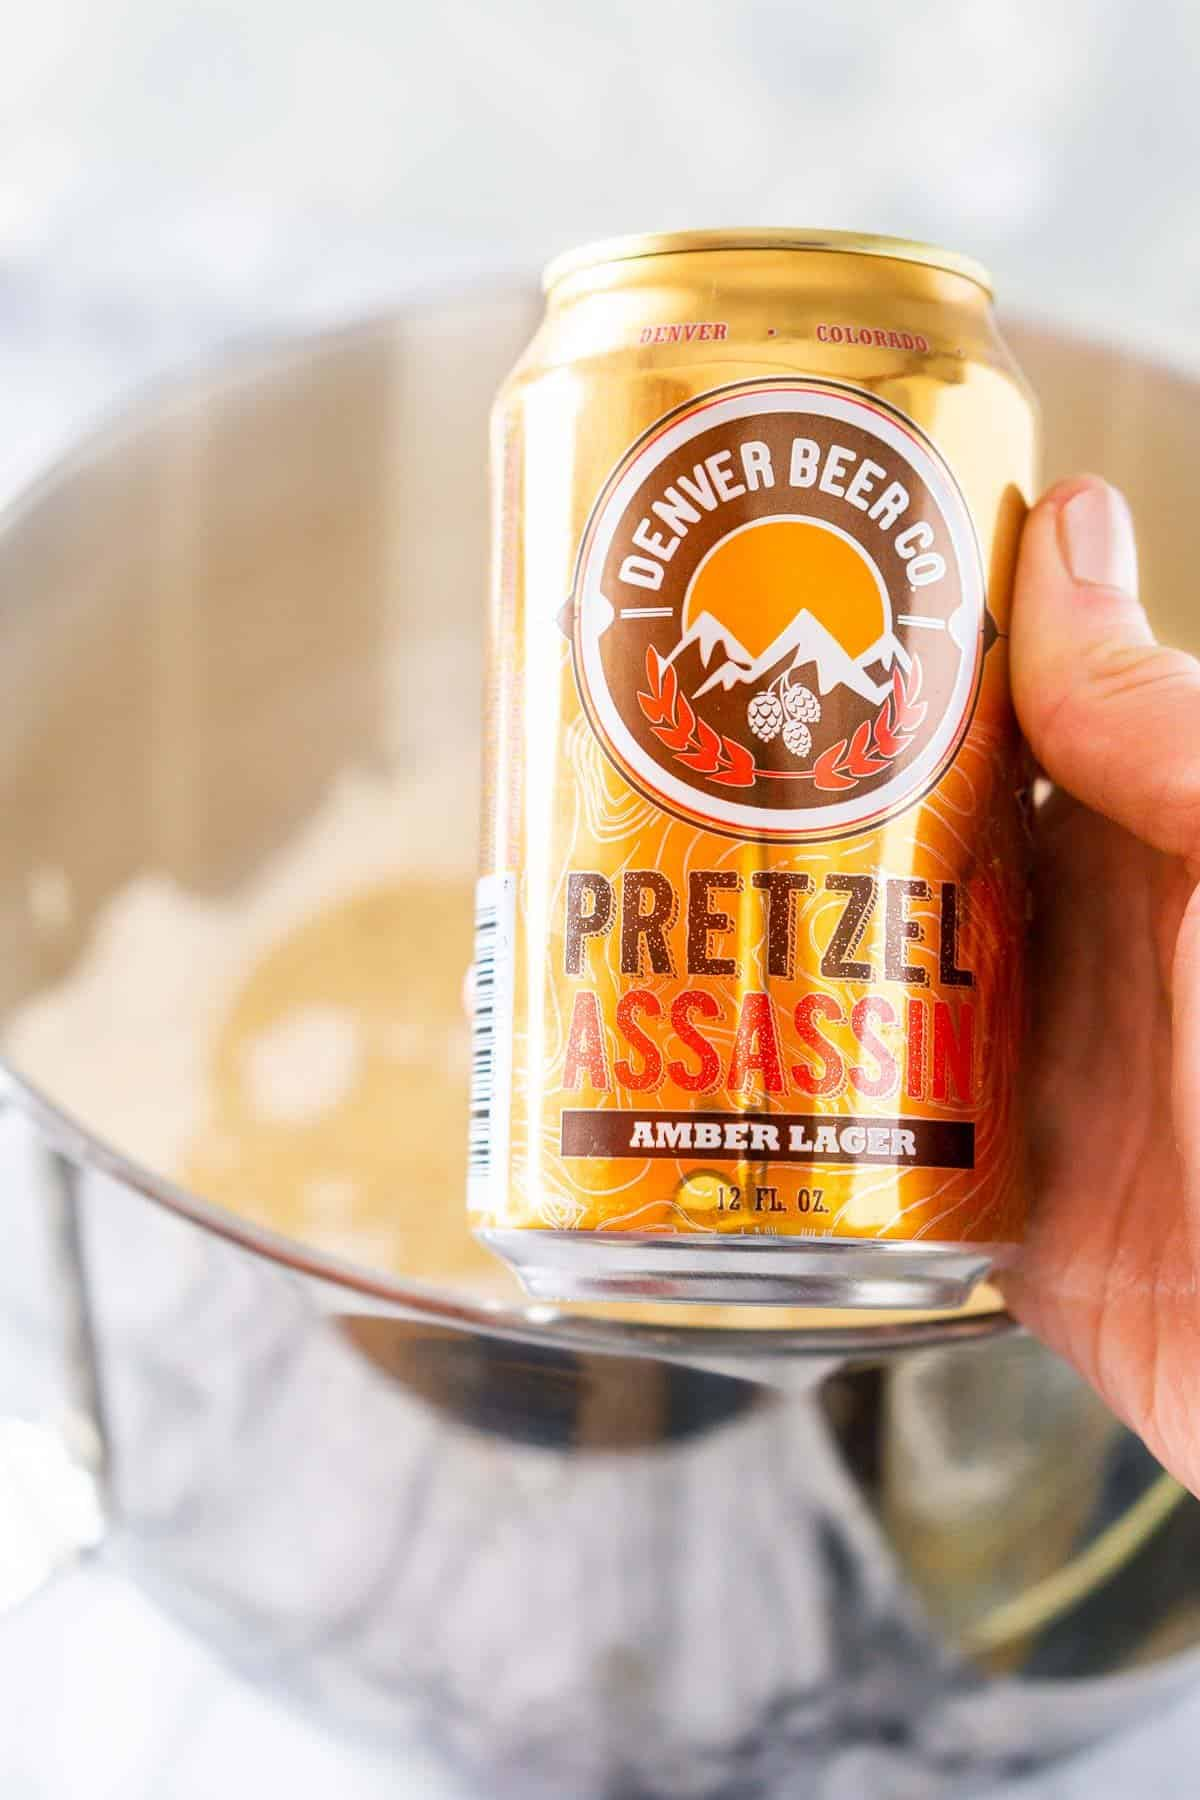 Showing some of the beer pizza dough ingredients for this recipe, including the beer used with the rest of the dough in the background.